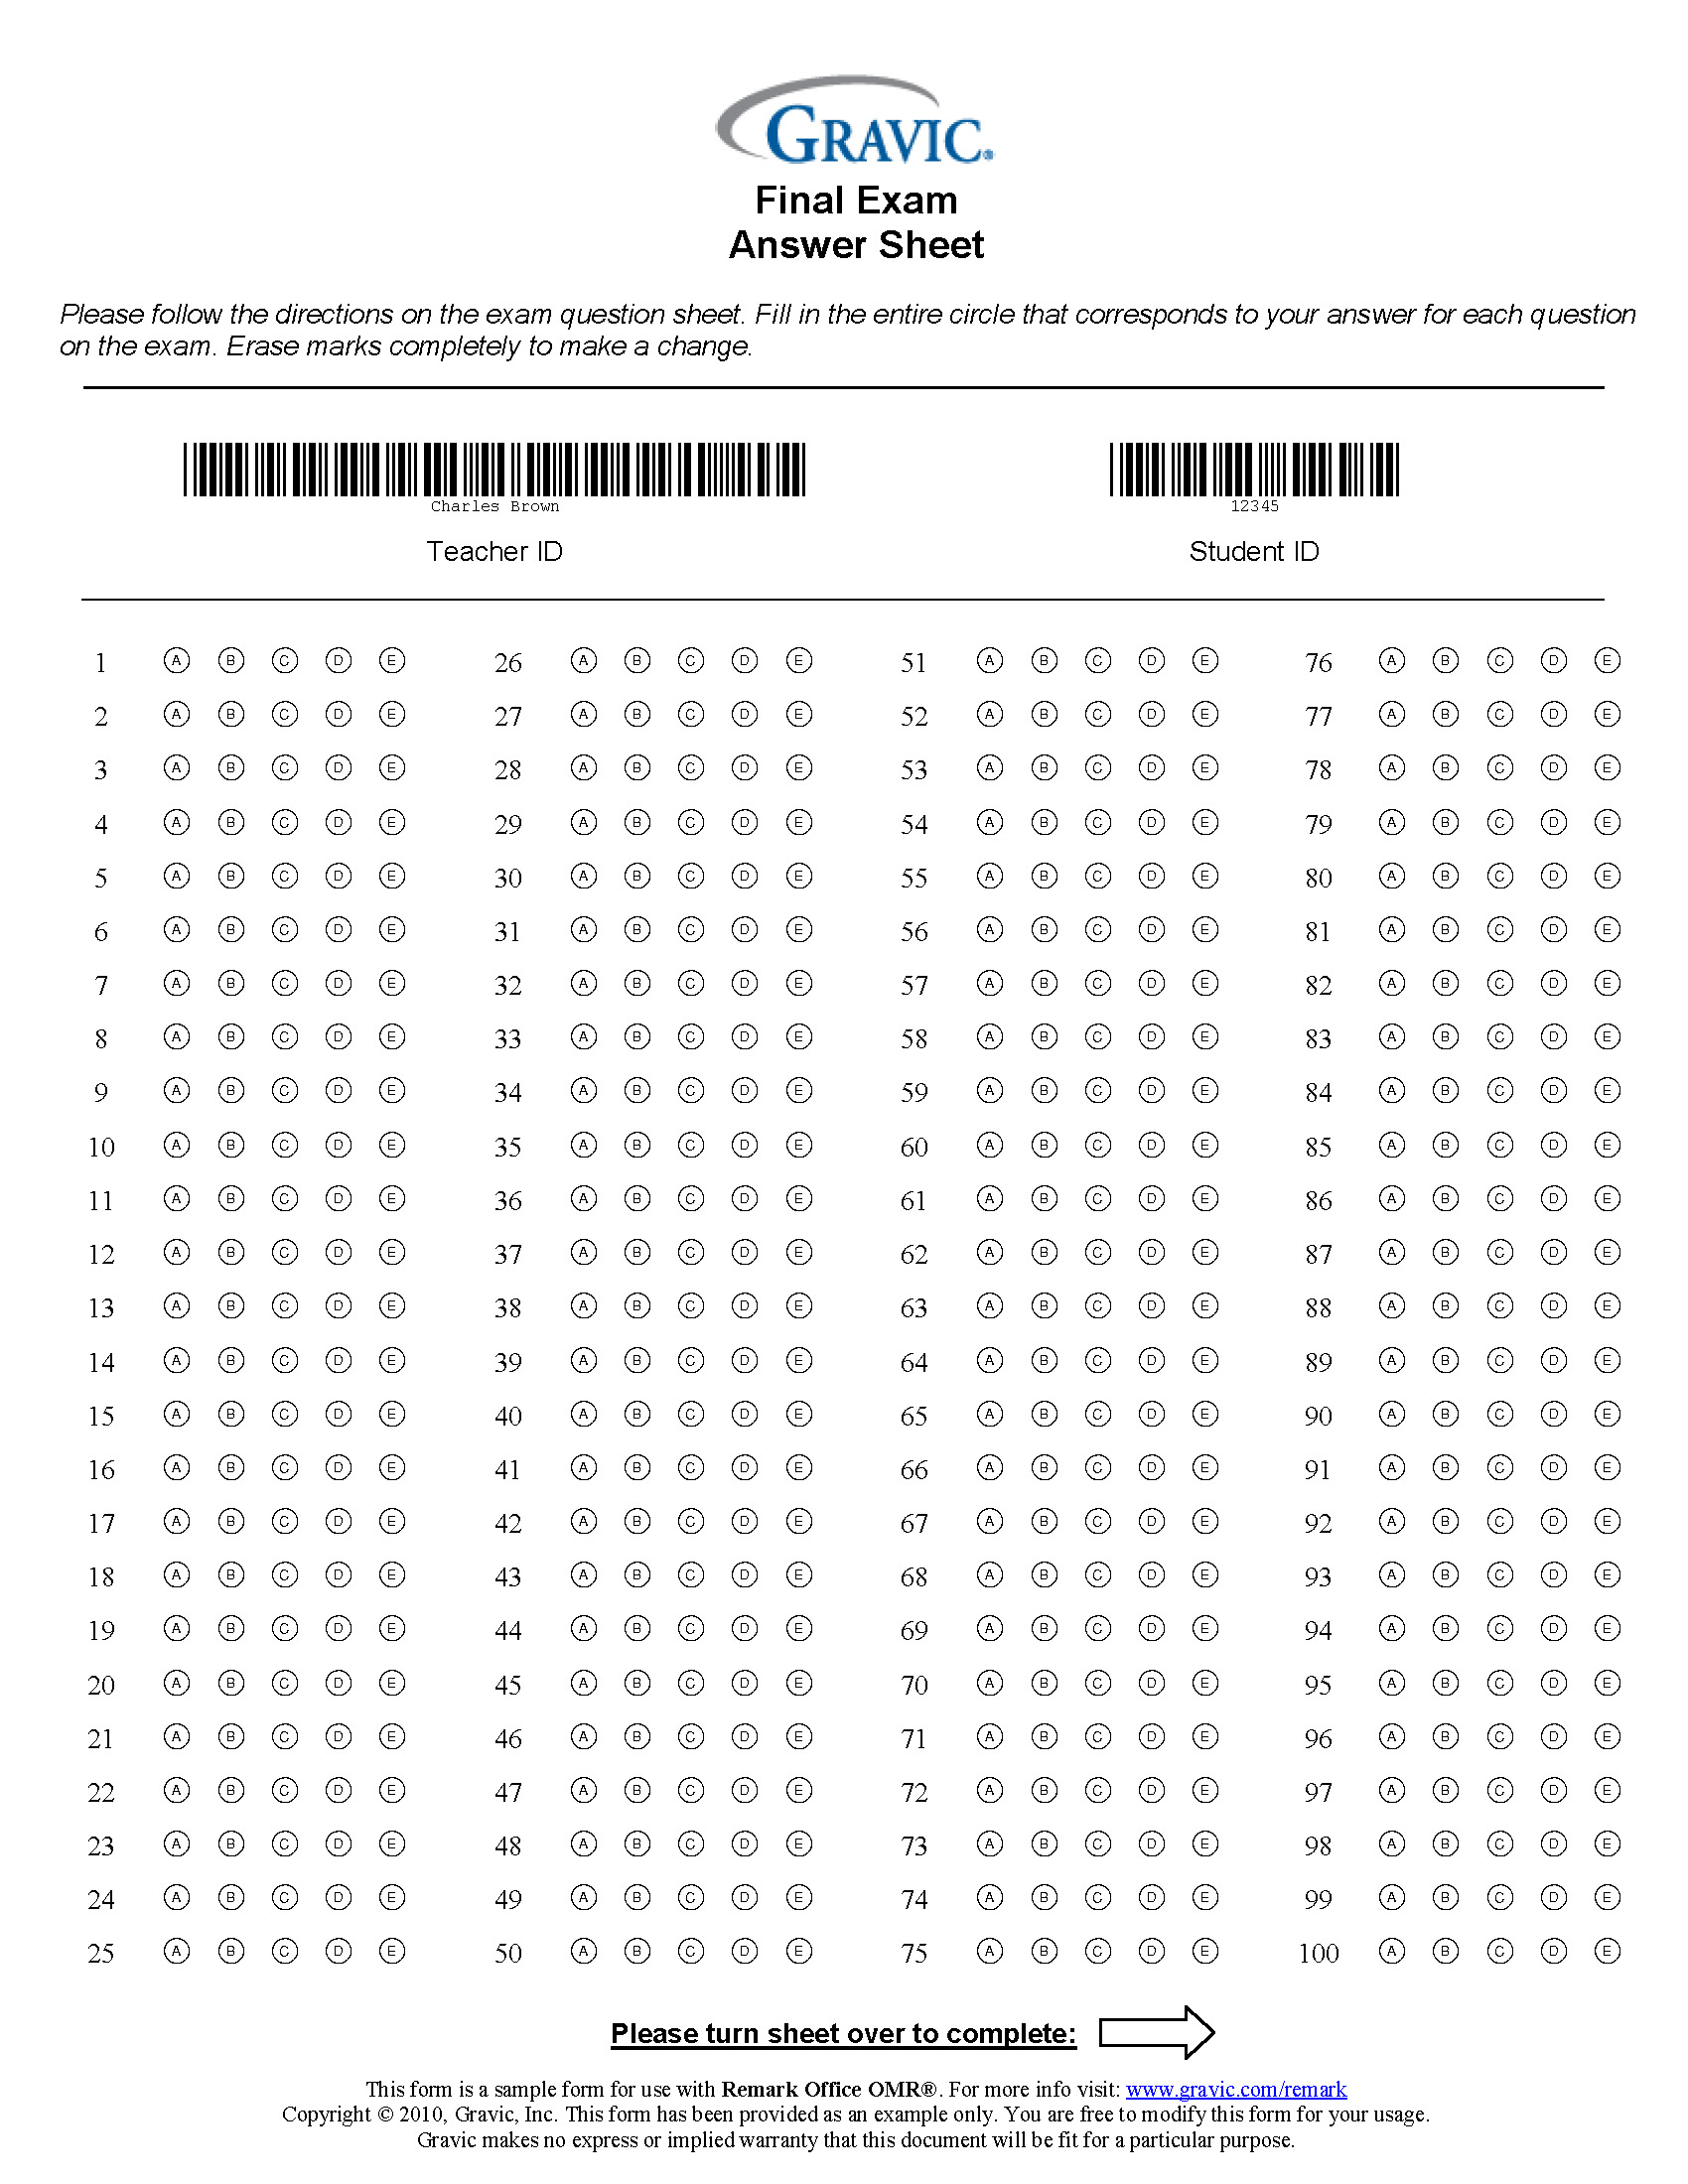 200 Question Answer Sheet With Extra Credit And Barcode